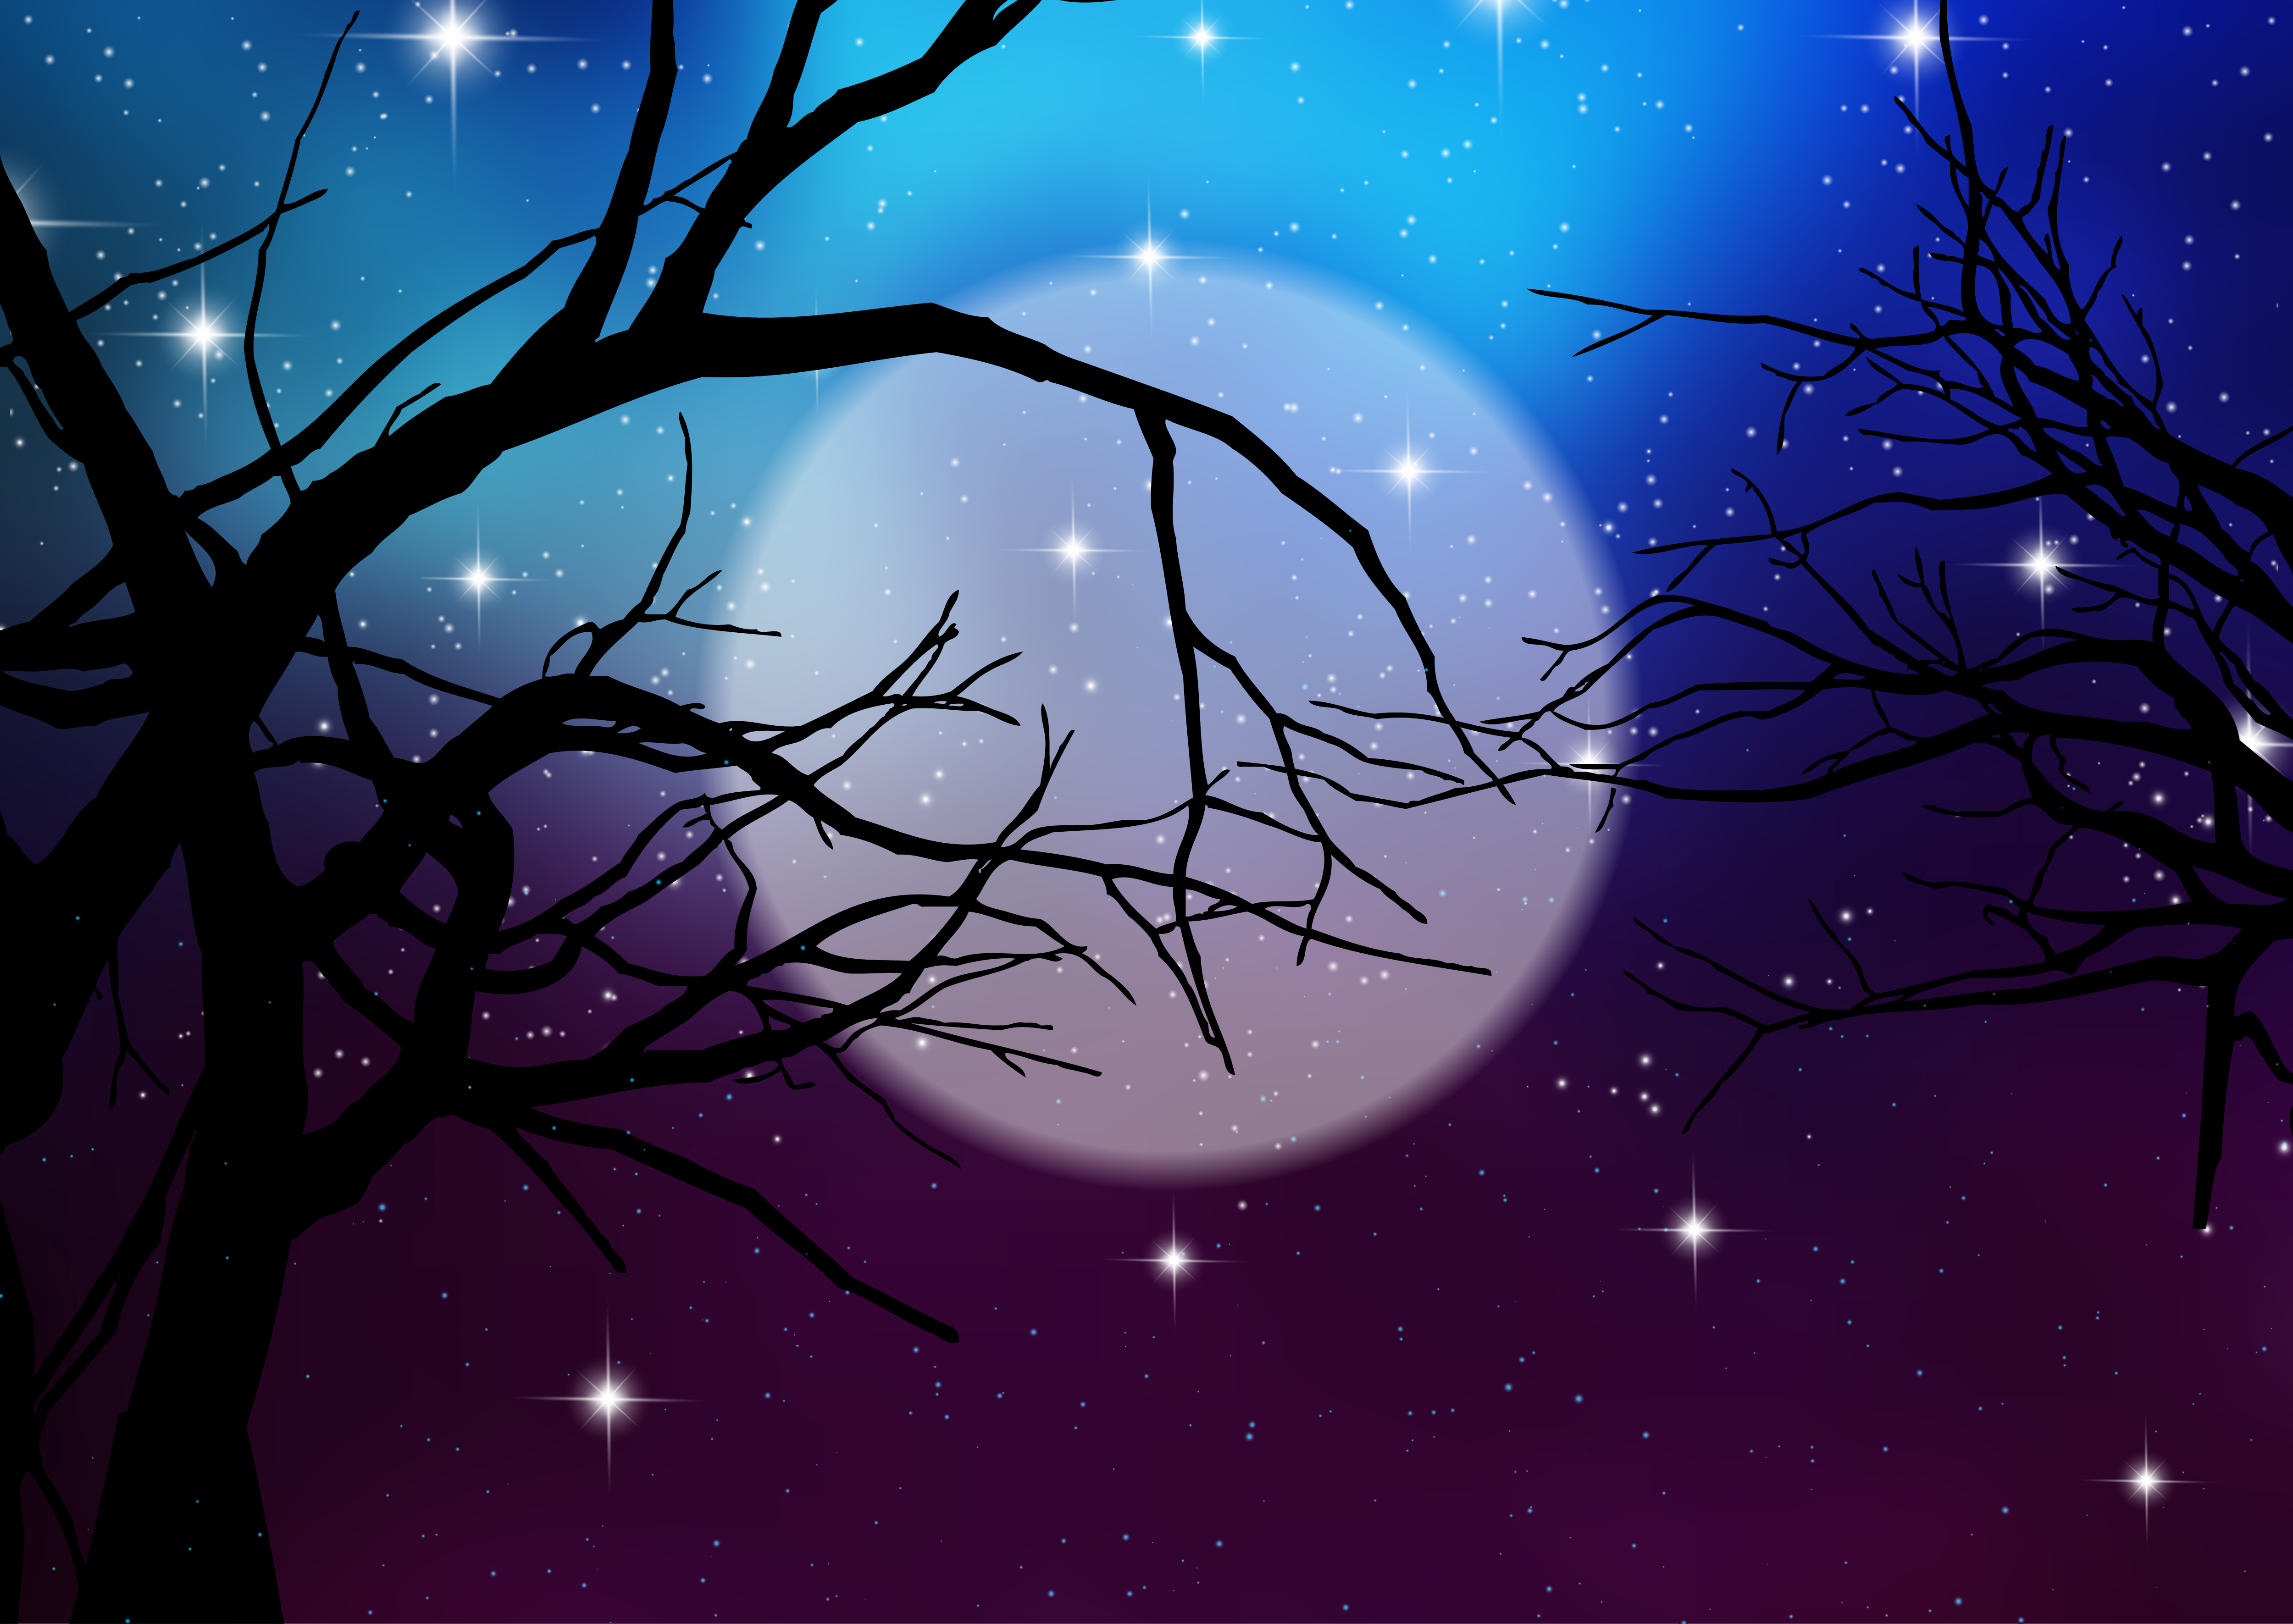 Halloween background with spooky trees - Download Free ...